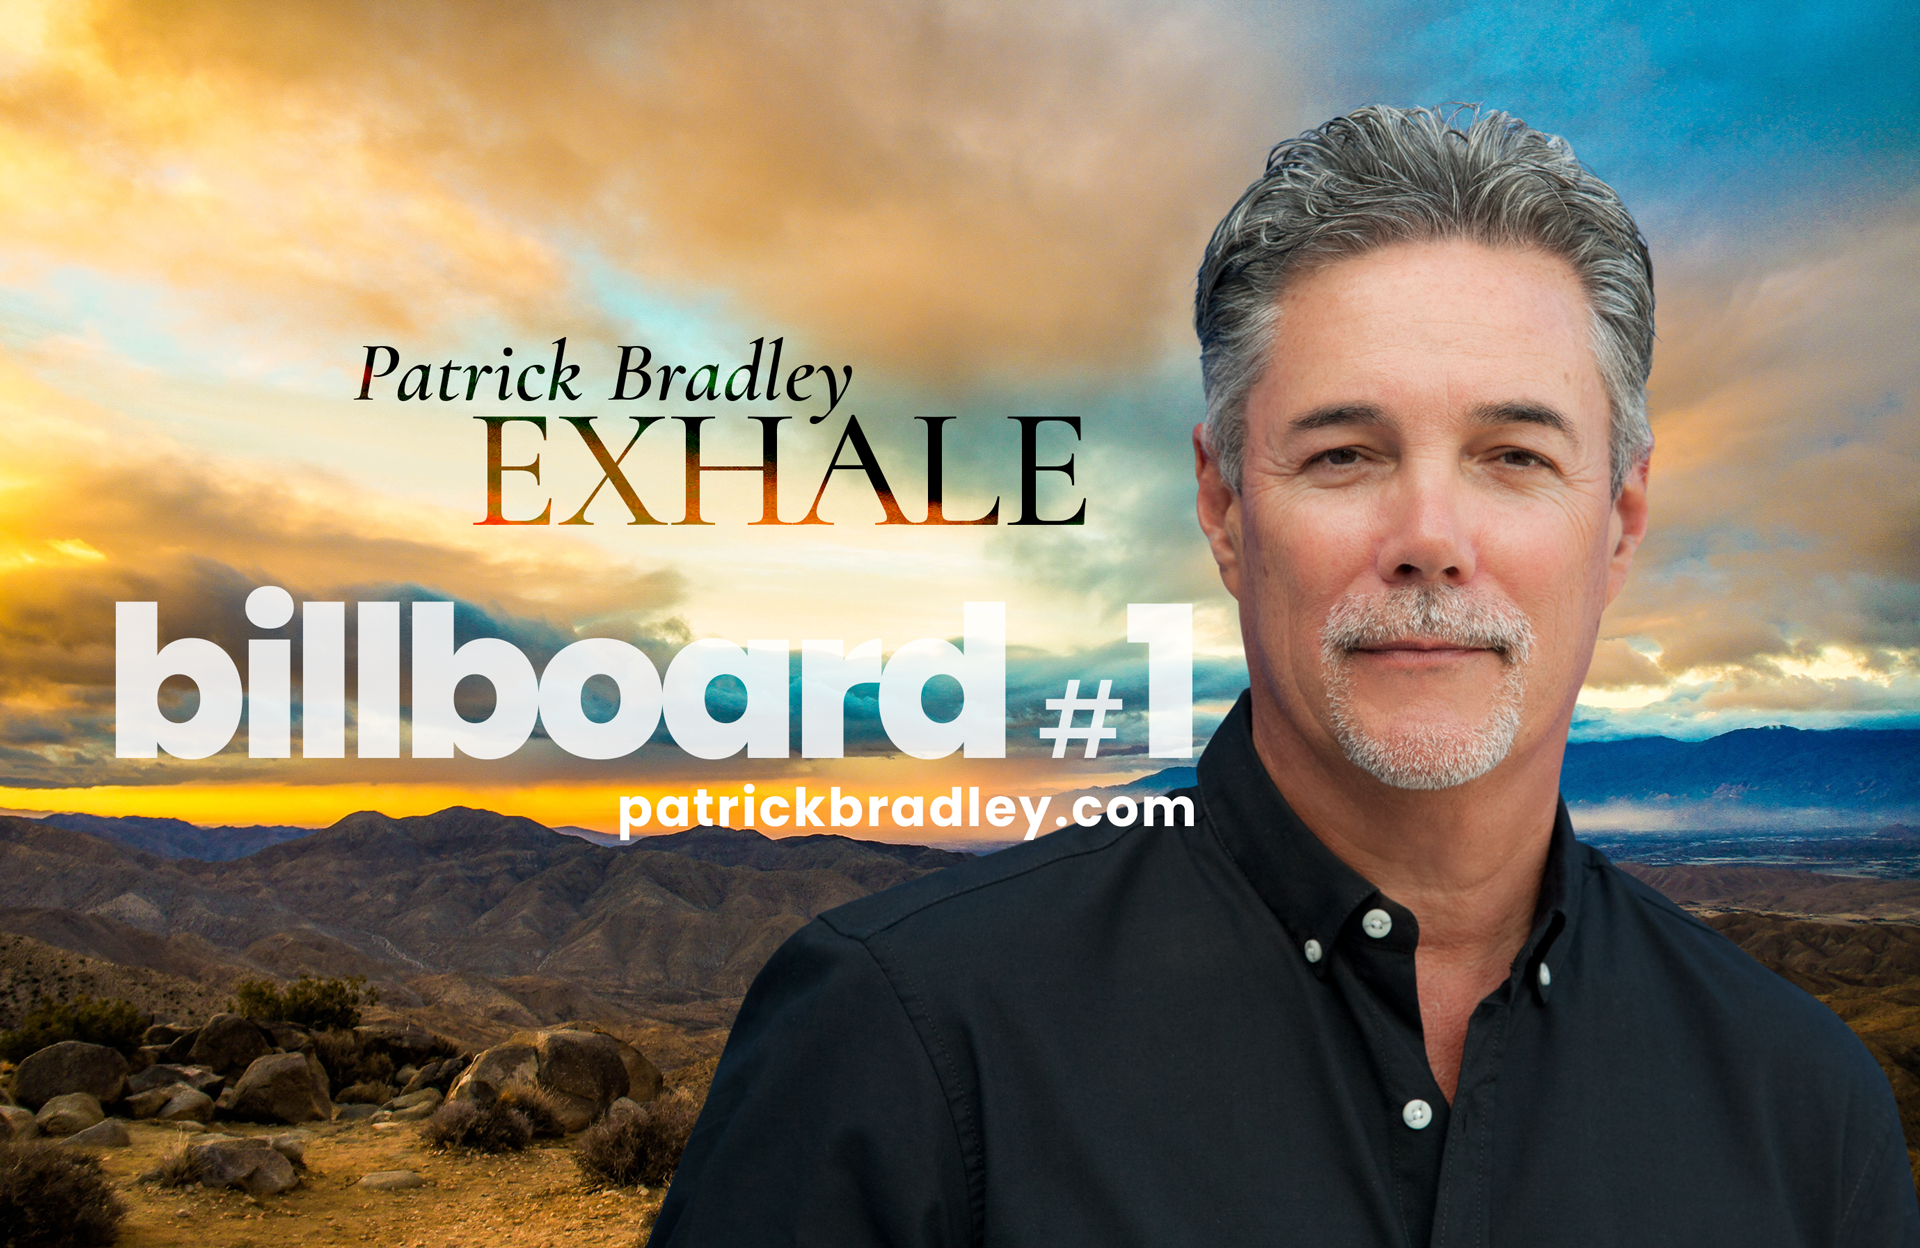 """Patrick Bradley and his new single ""Exhale"" hit #1 on Billboard"